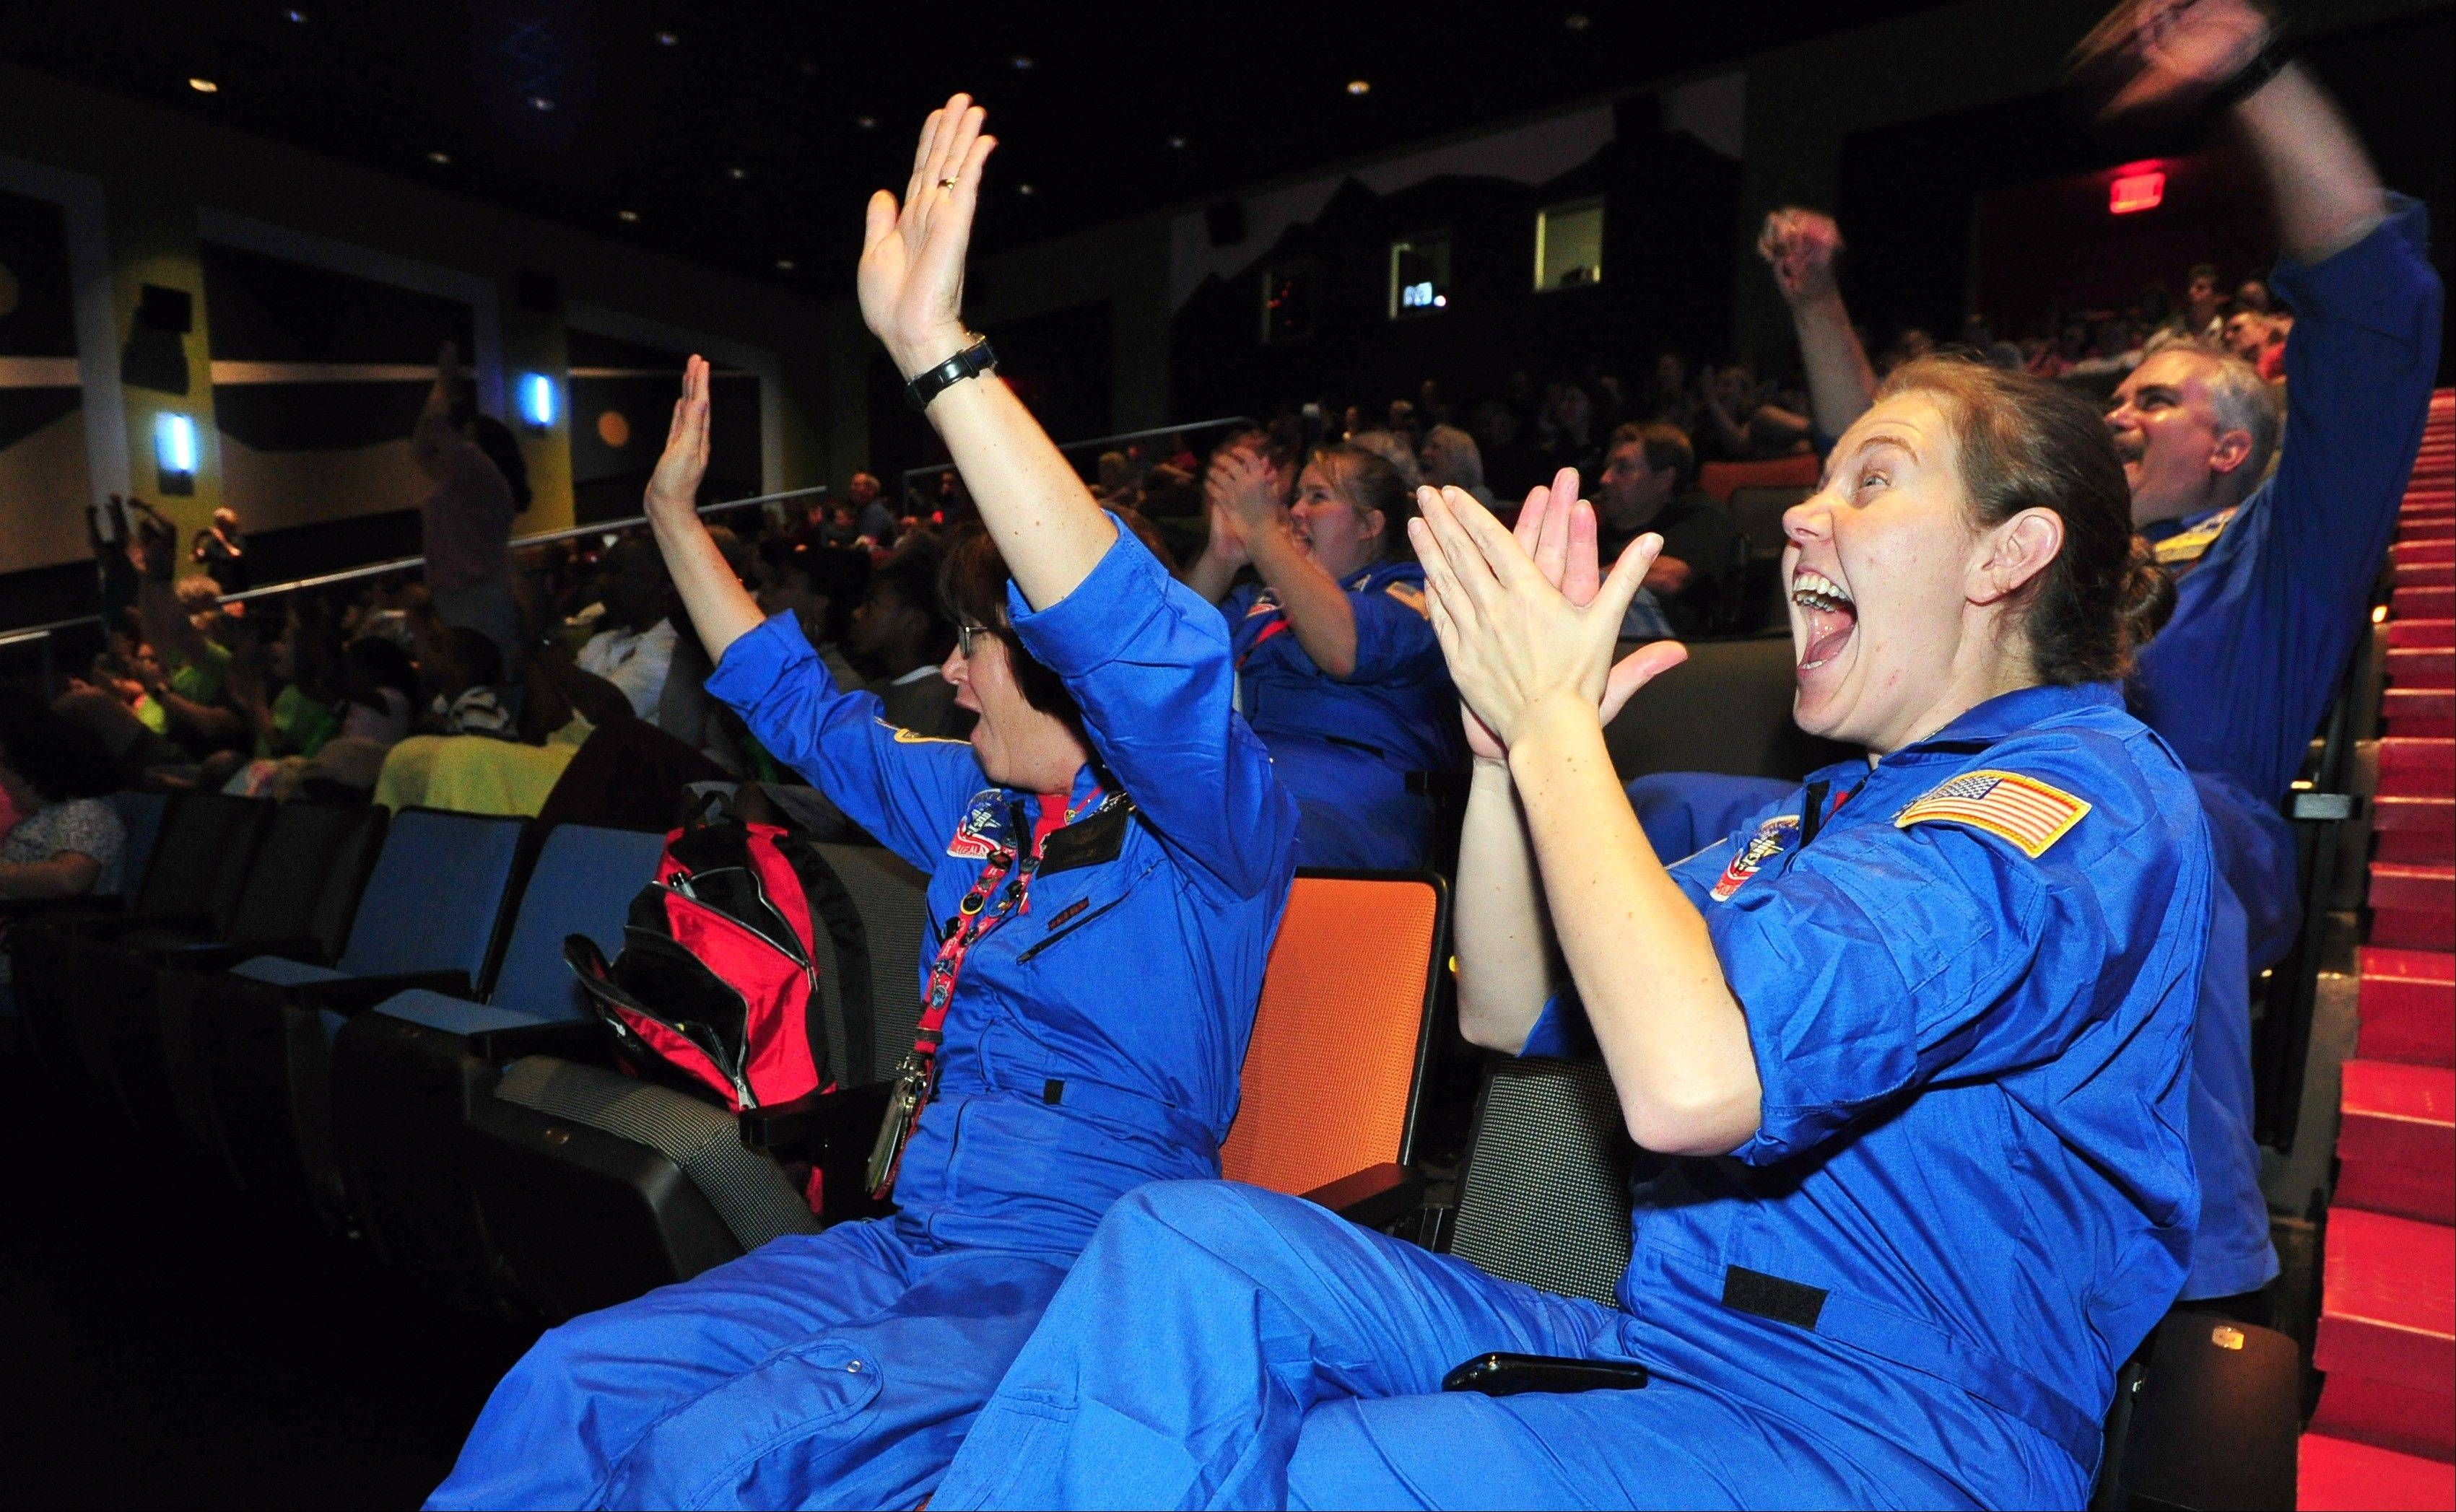 Shannon Lampton, and Charlene Pittman, both educators with the U.S. Space and Rocket Center, cheer as they watch NASA's Mars Curiosity rover land on Mars during a special viewing event at the U.S. Space and Rocket Center Monday, Aug. 6, 2012 in Huntsville, Ala.